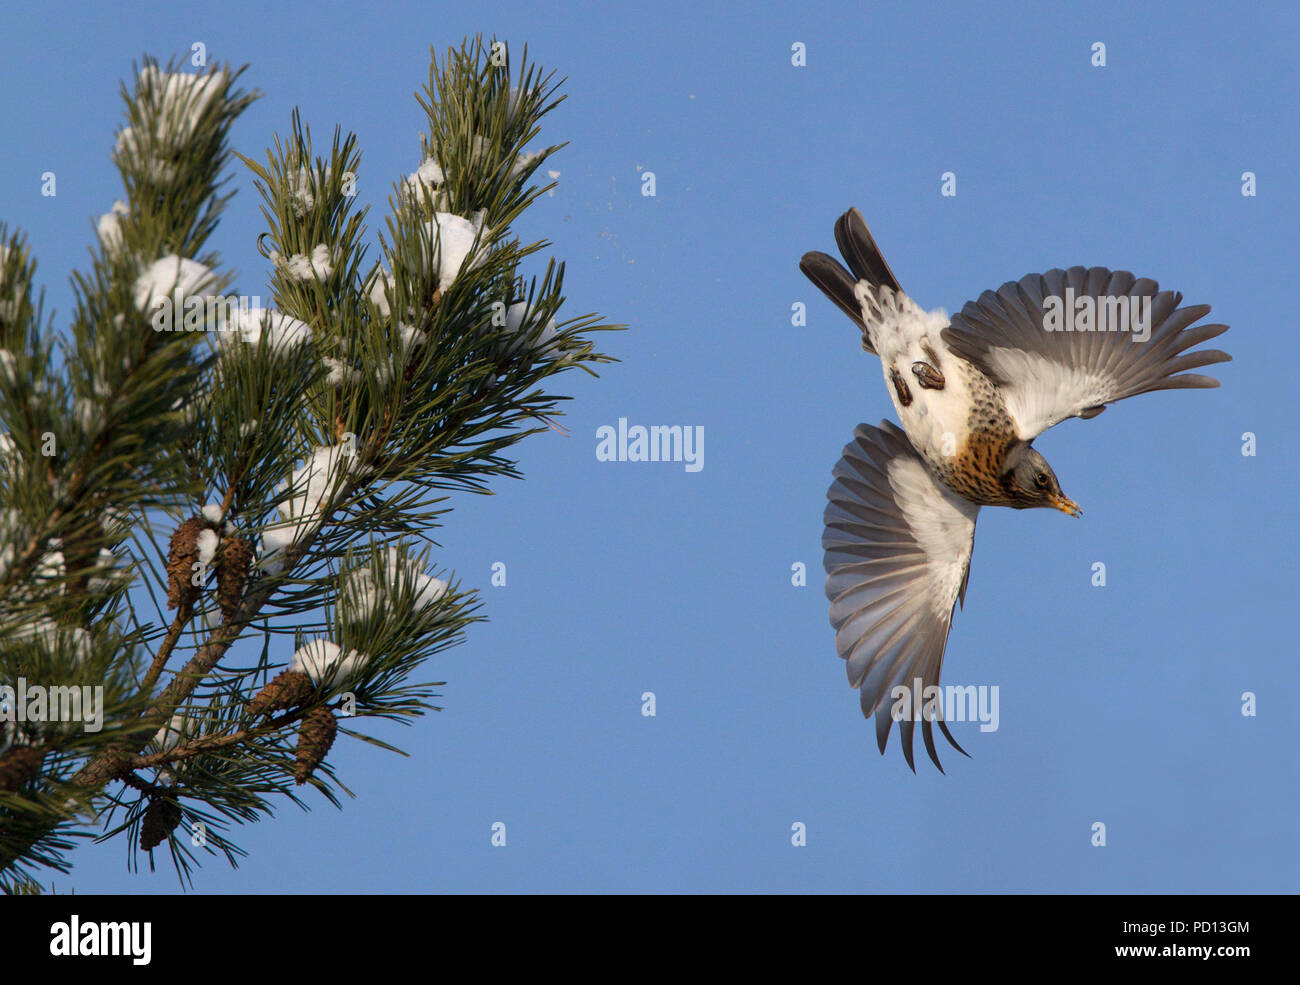 Fieldfare, Turdus pilaris, single adult flying off conifer tree. Lea Valley, Essex, UK. - Stock Image